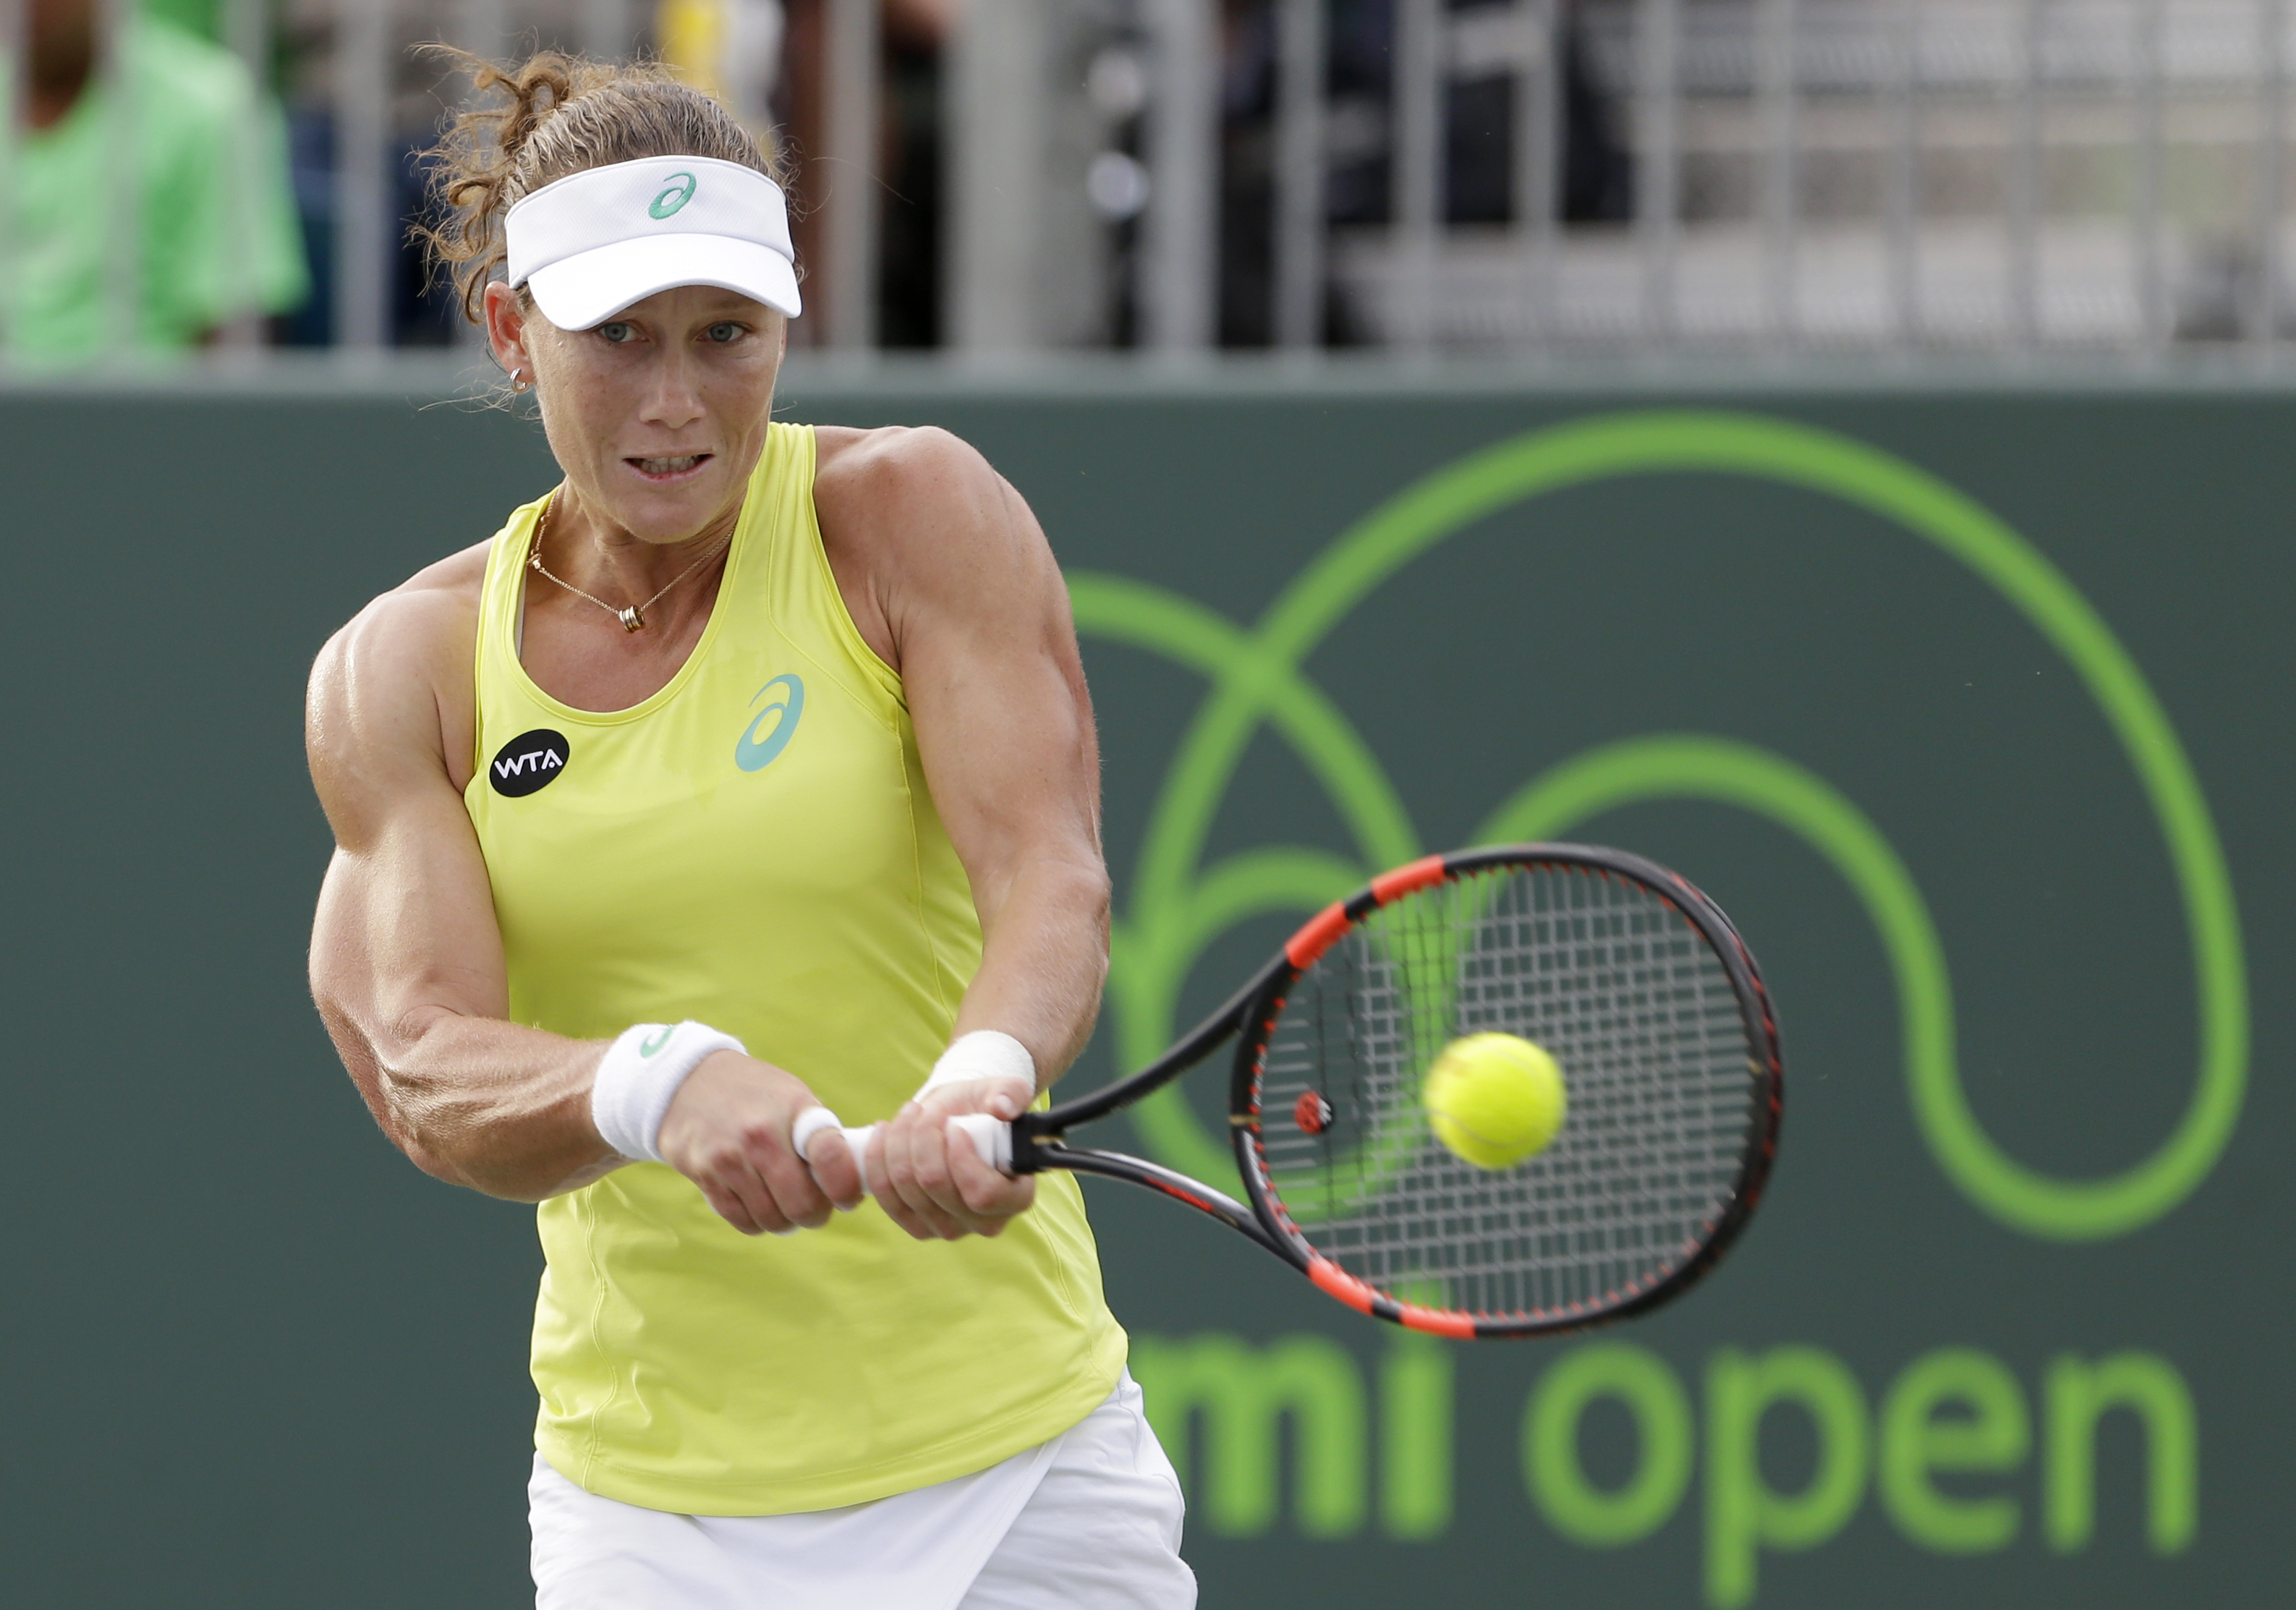 Samantha Stosur, of Australia, returns a shot from Venus Williams at the Miami Open tennis tournament, Saturday, March 28, 2015 in Key Biscayne, Fla. Williams won 6-4, 7-6 (3). (AP Photo/Wilfredo Lee)